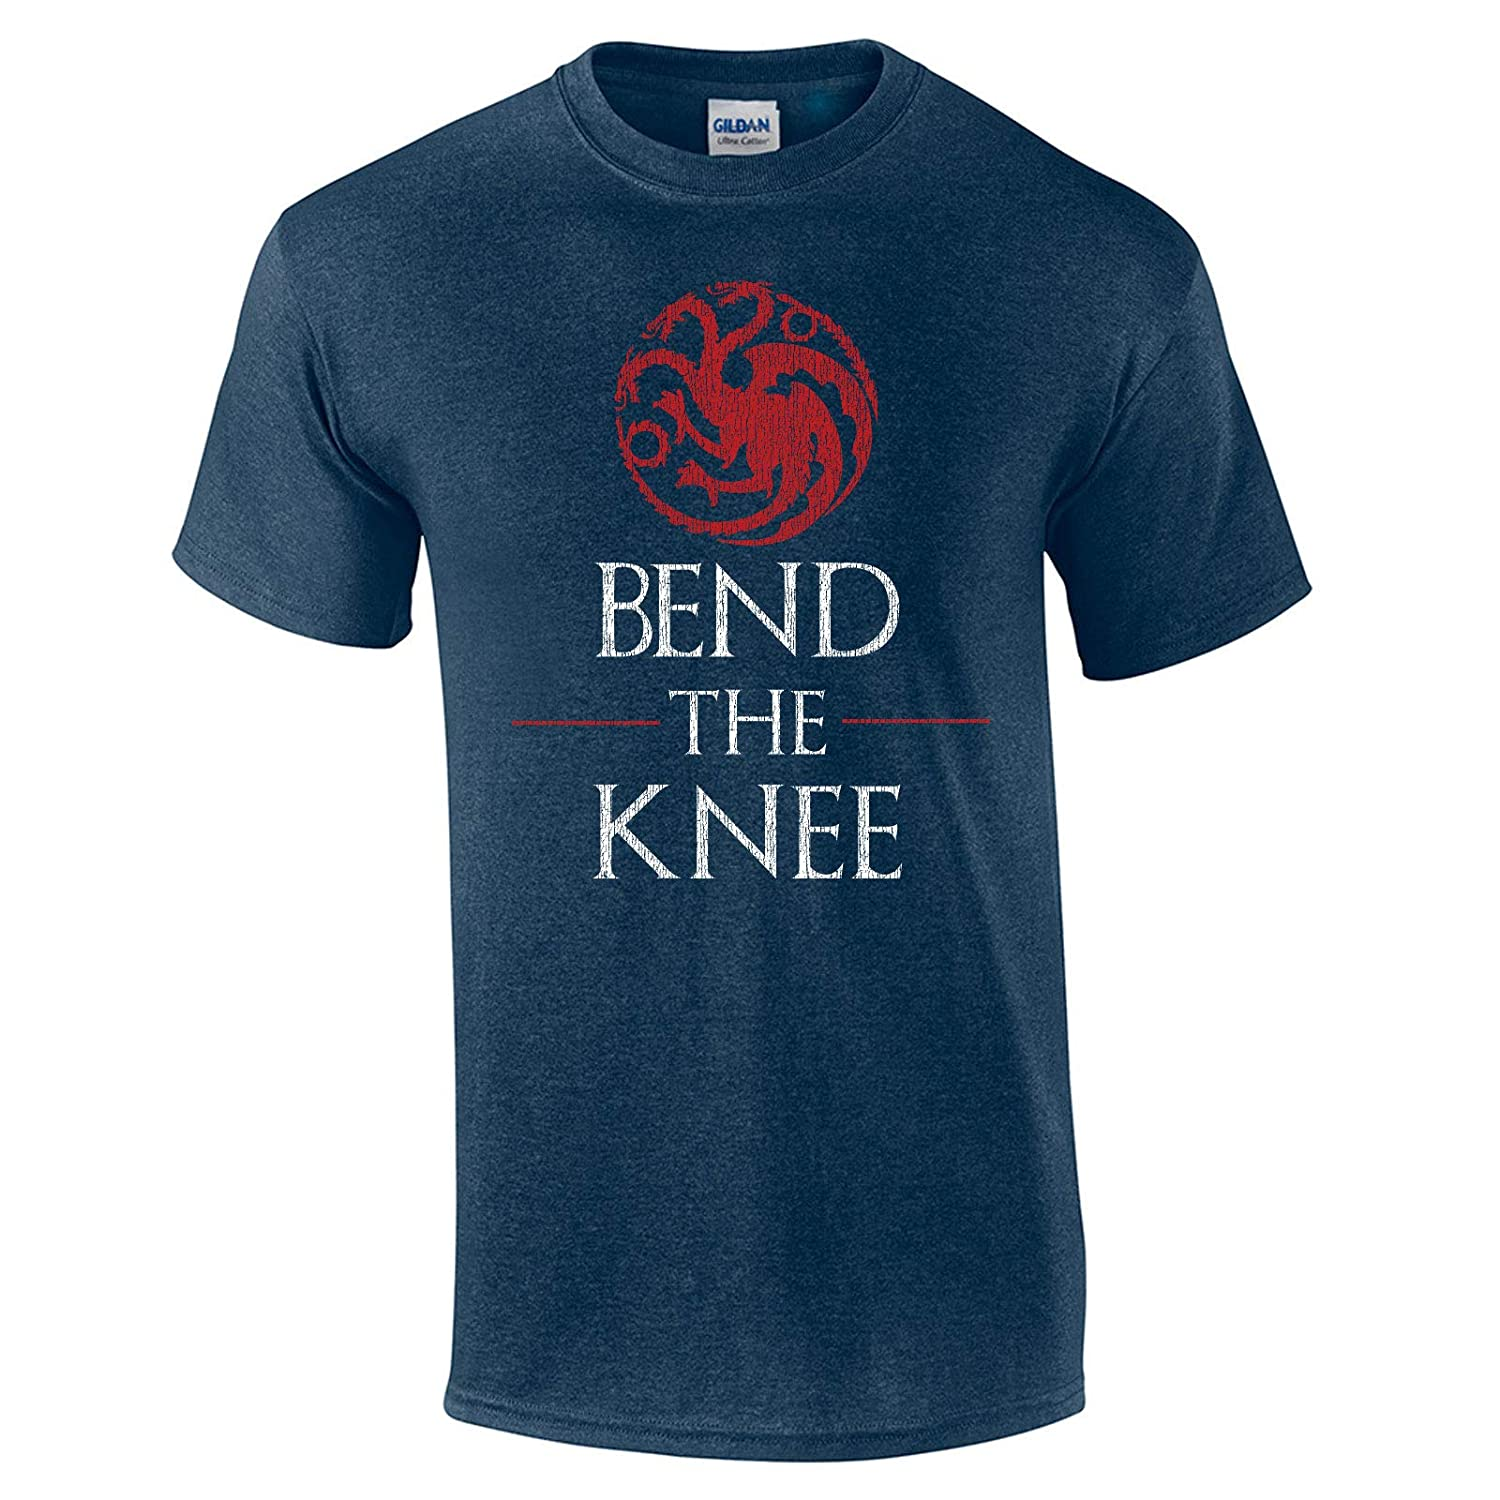 a4f8961f18 Amazon.com: Swaffy Tees 621 Bend The Knee Funny Men's T Shirt: Clothing